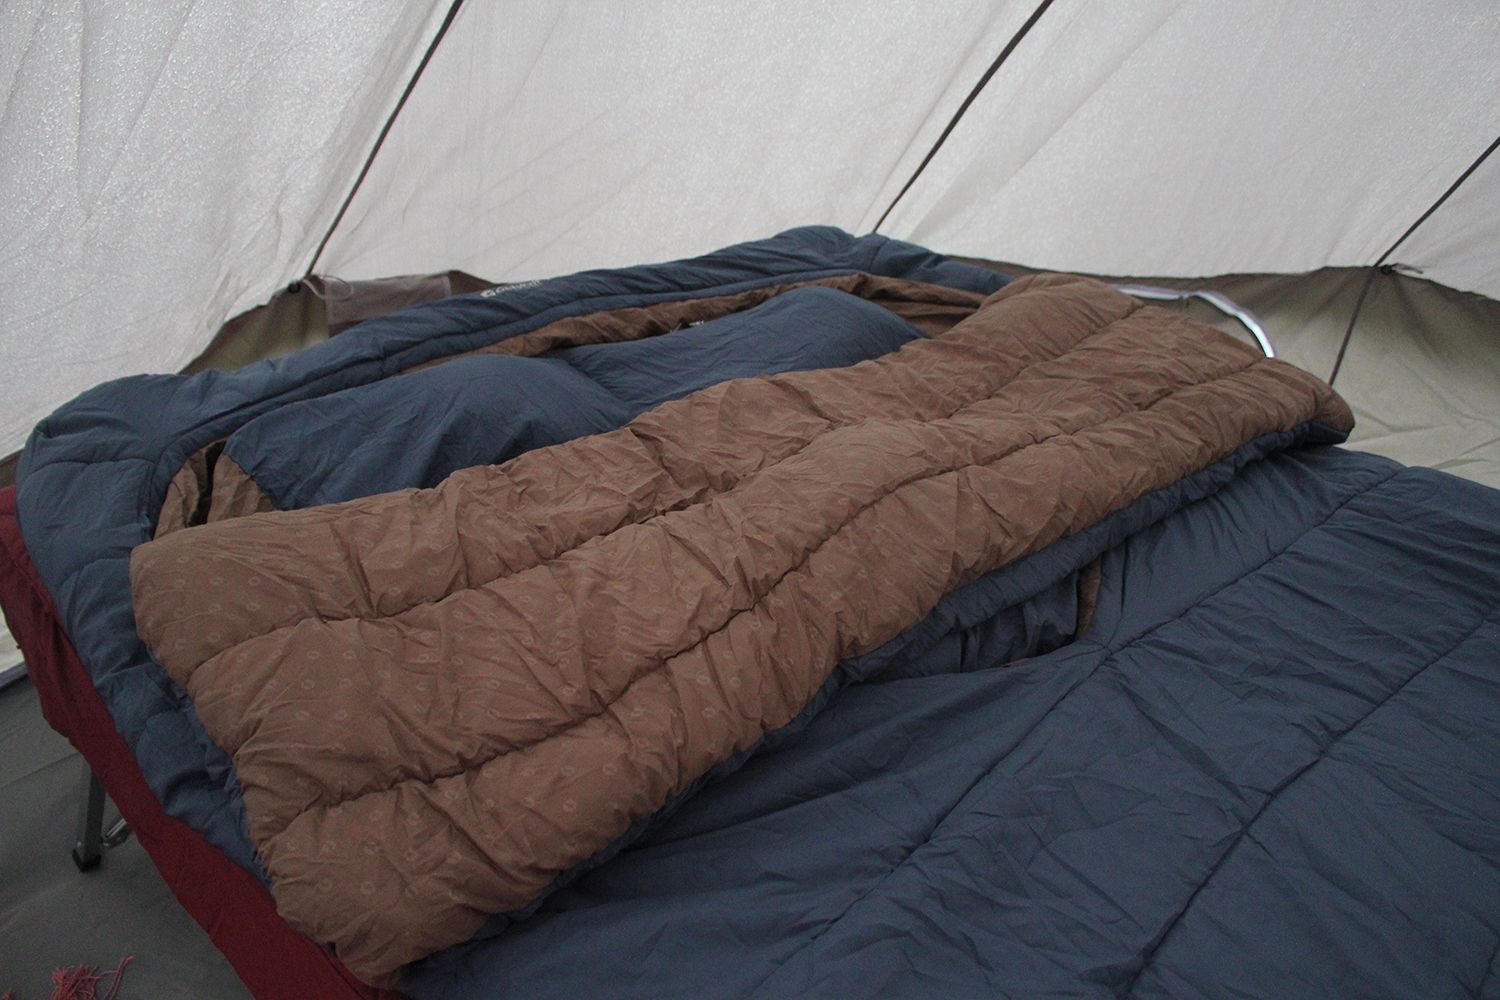 New for 2019 Outwell Camper Lux Double Isofill Luxury Sleeping Bag